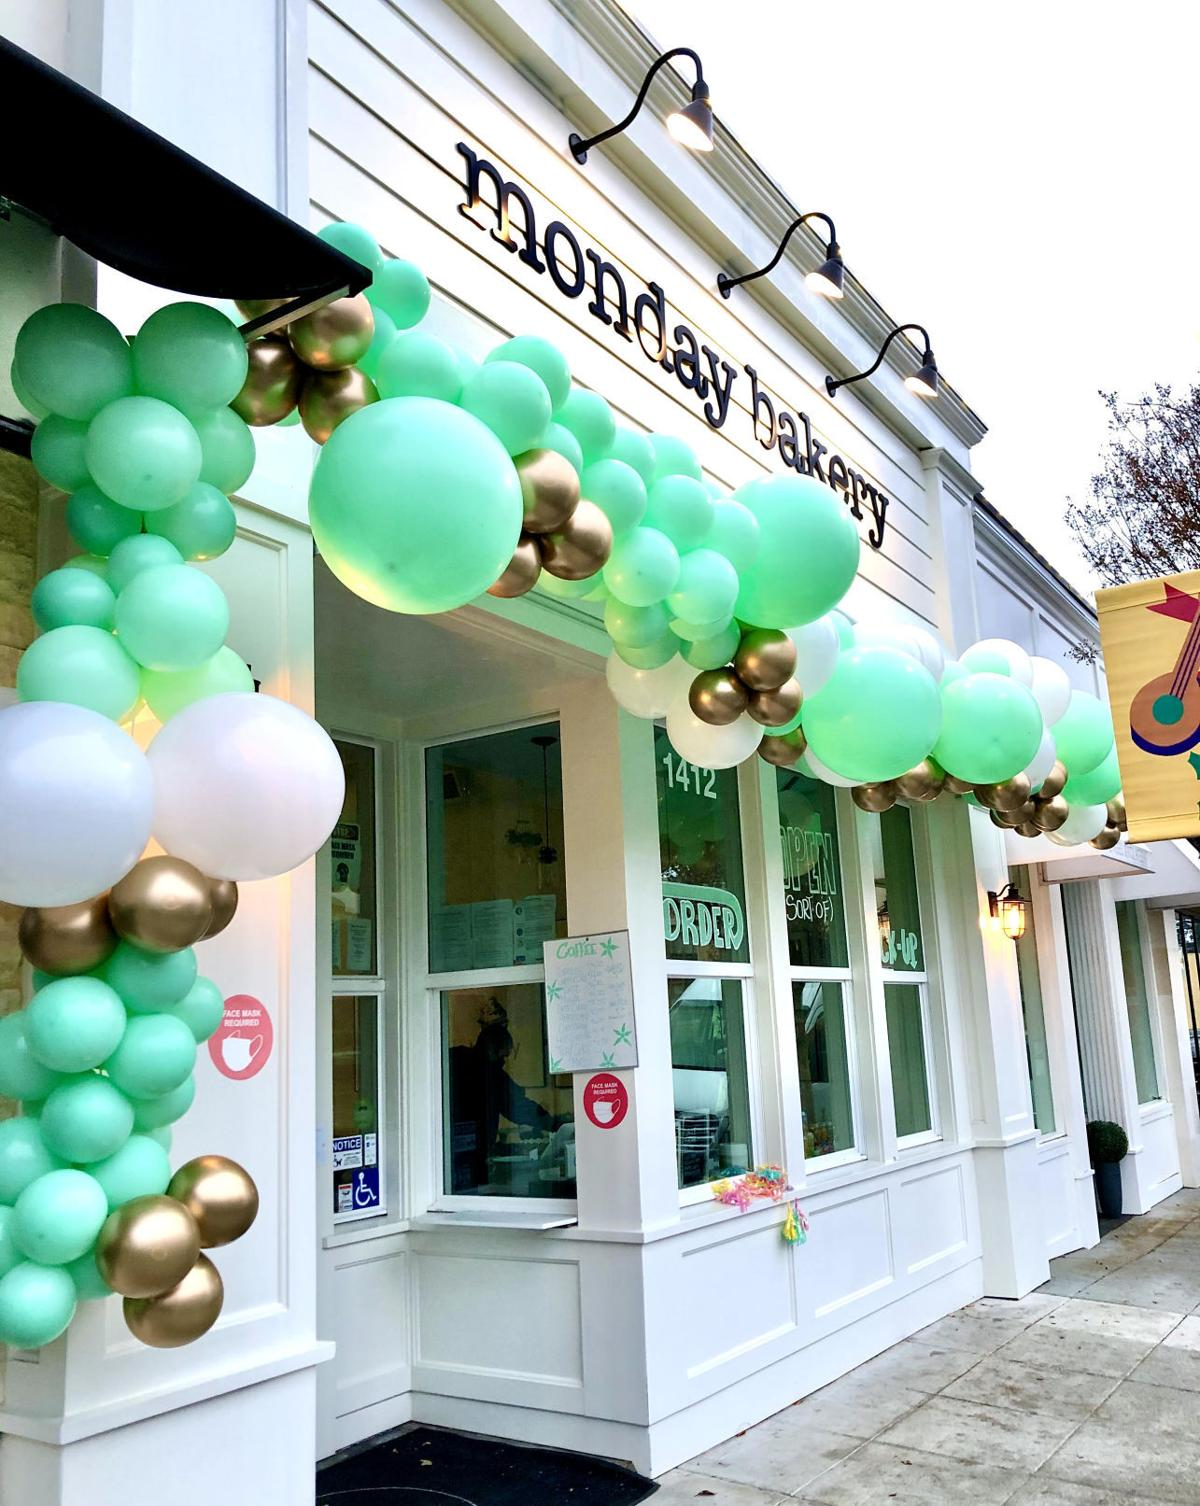 A large garland made for Monday Bakery by Balloon Girl Napa.